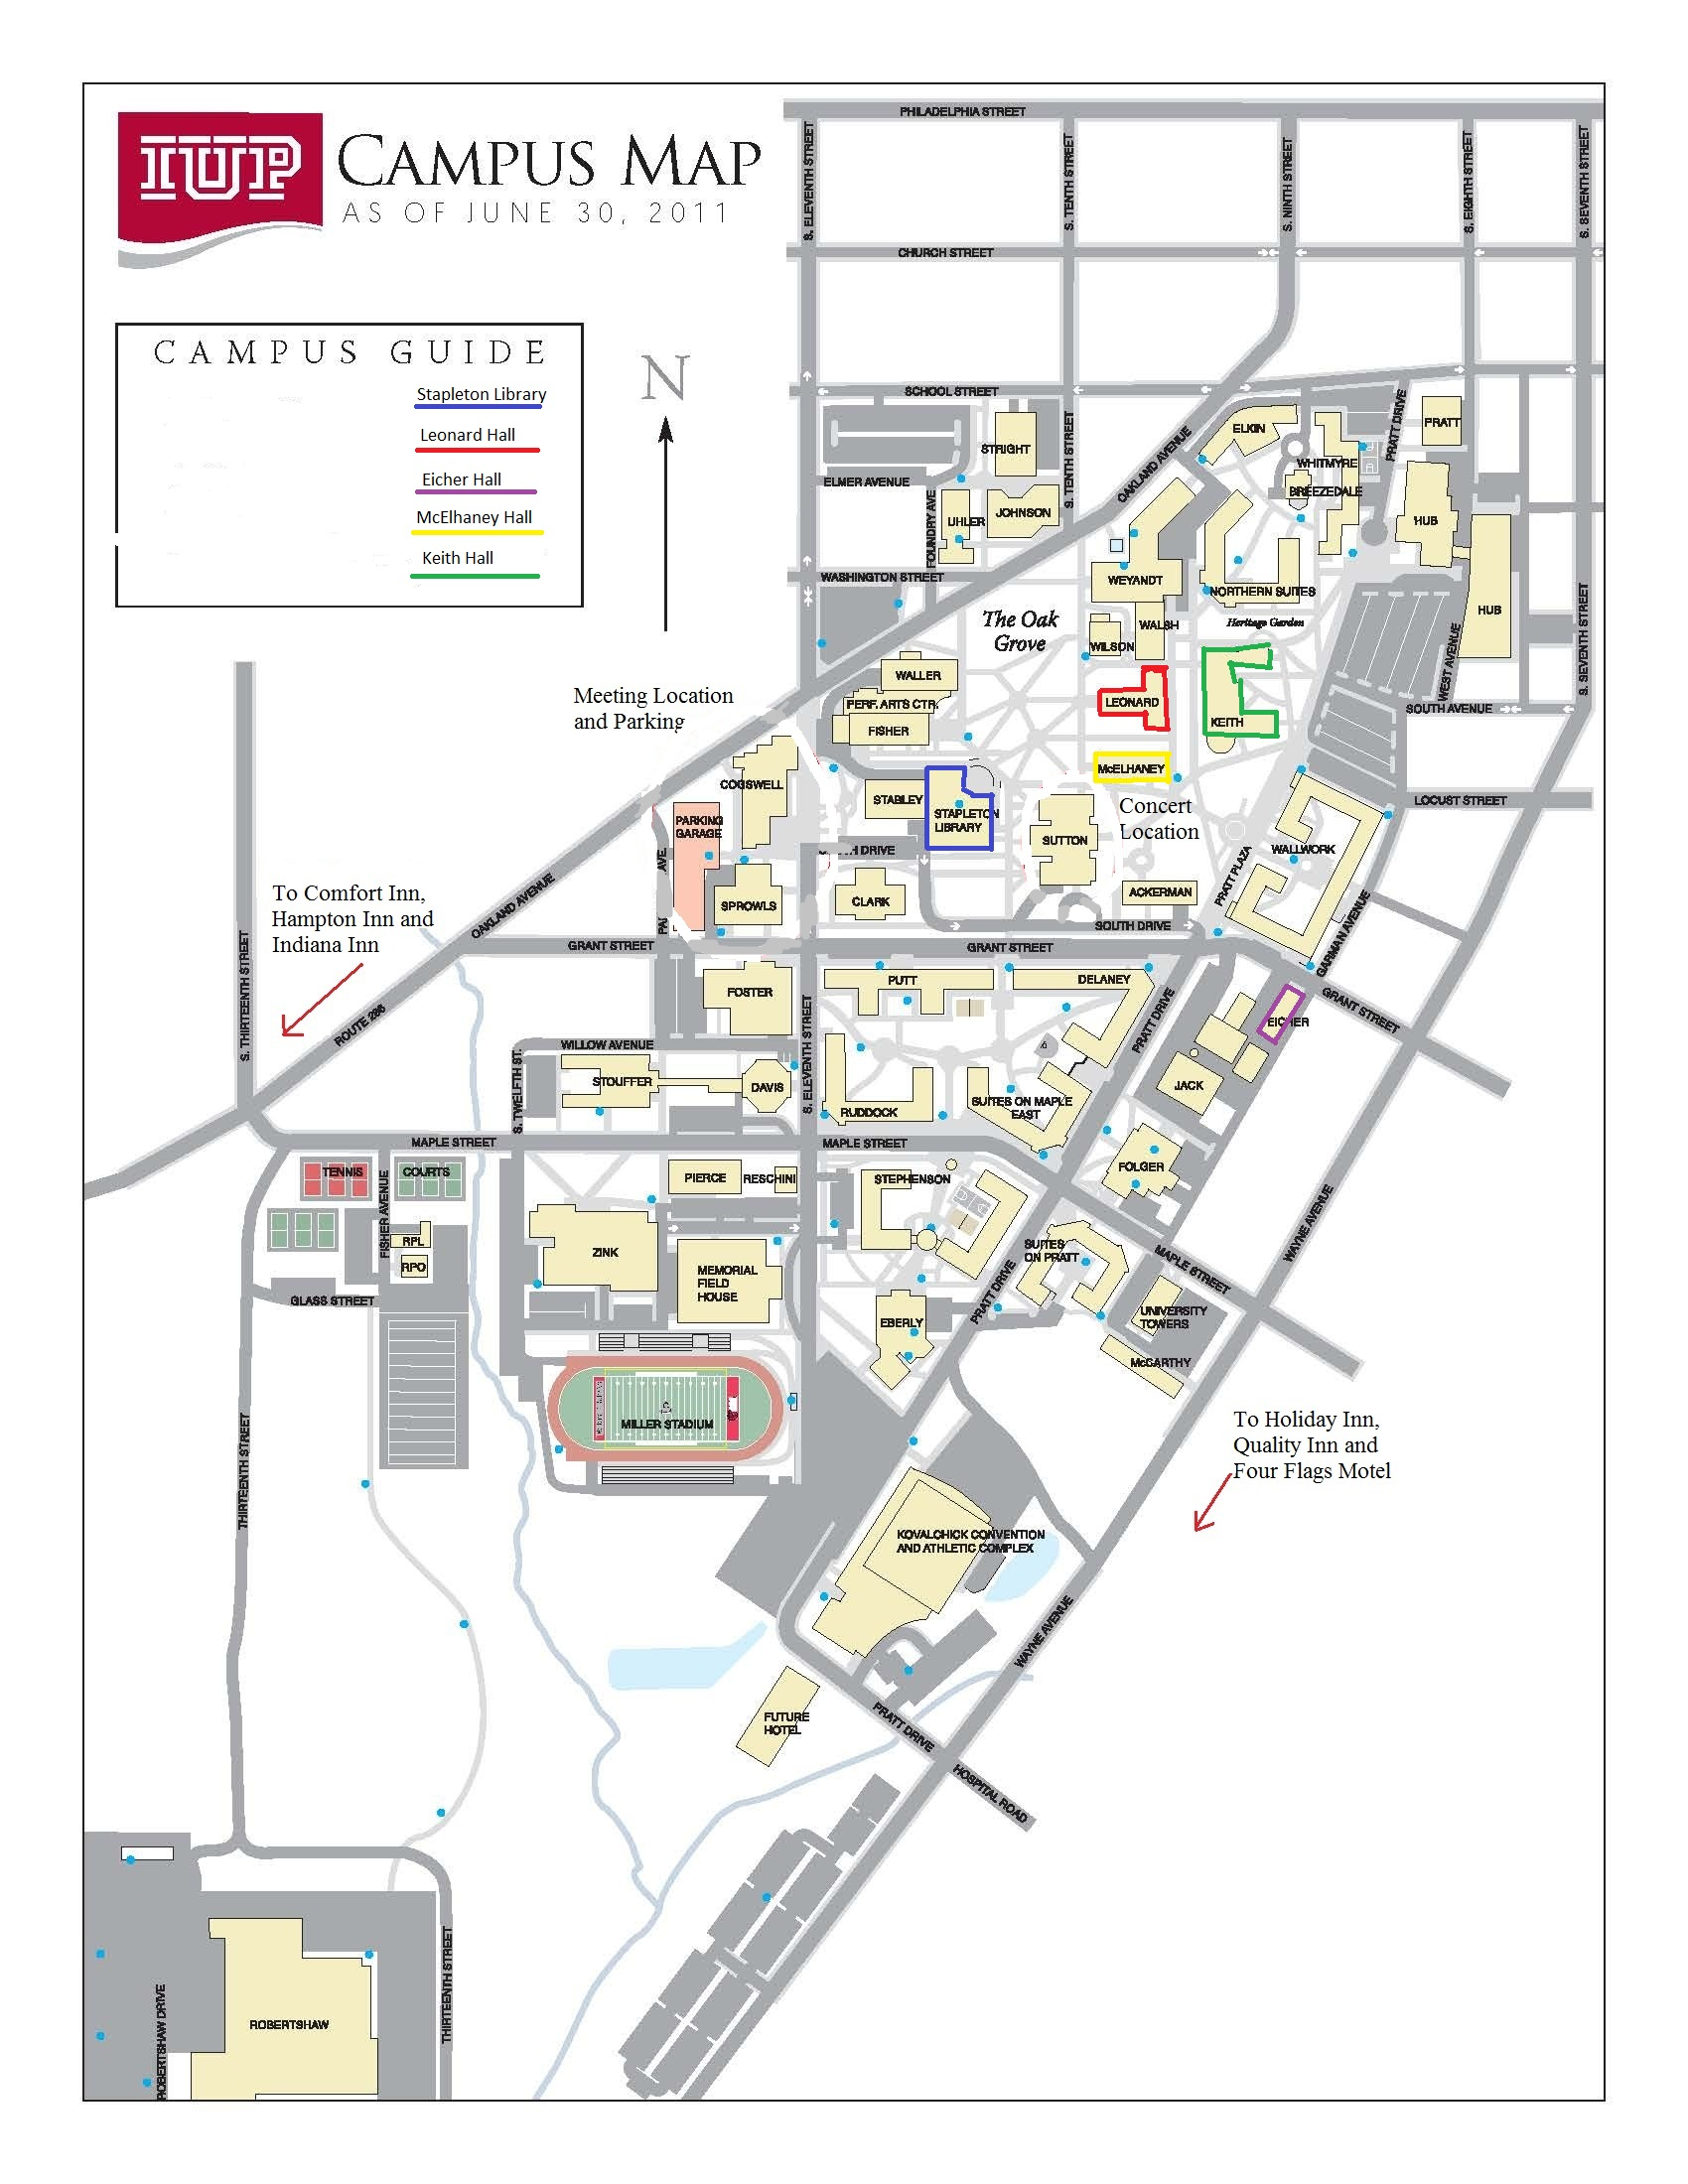 Image   IUP campus map. | IUPENGL101 Wiki | FANDOM powered by Wikia